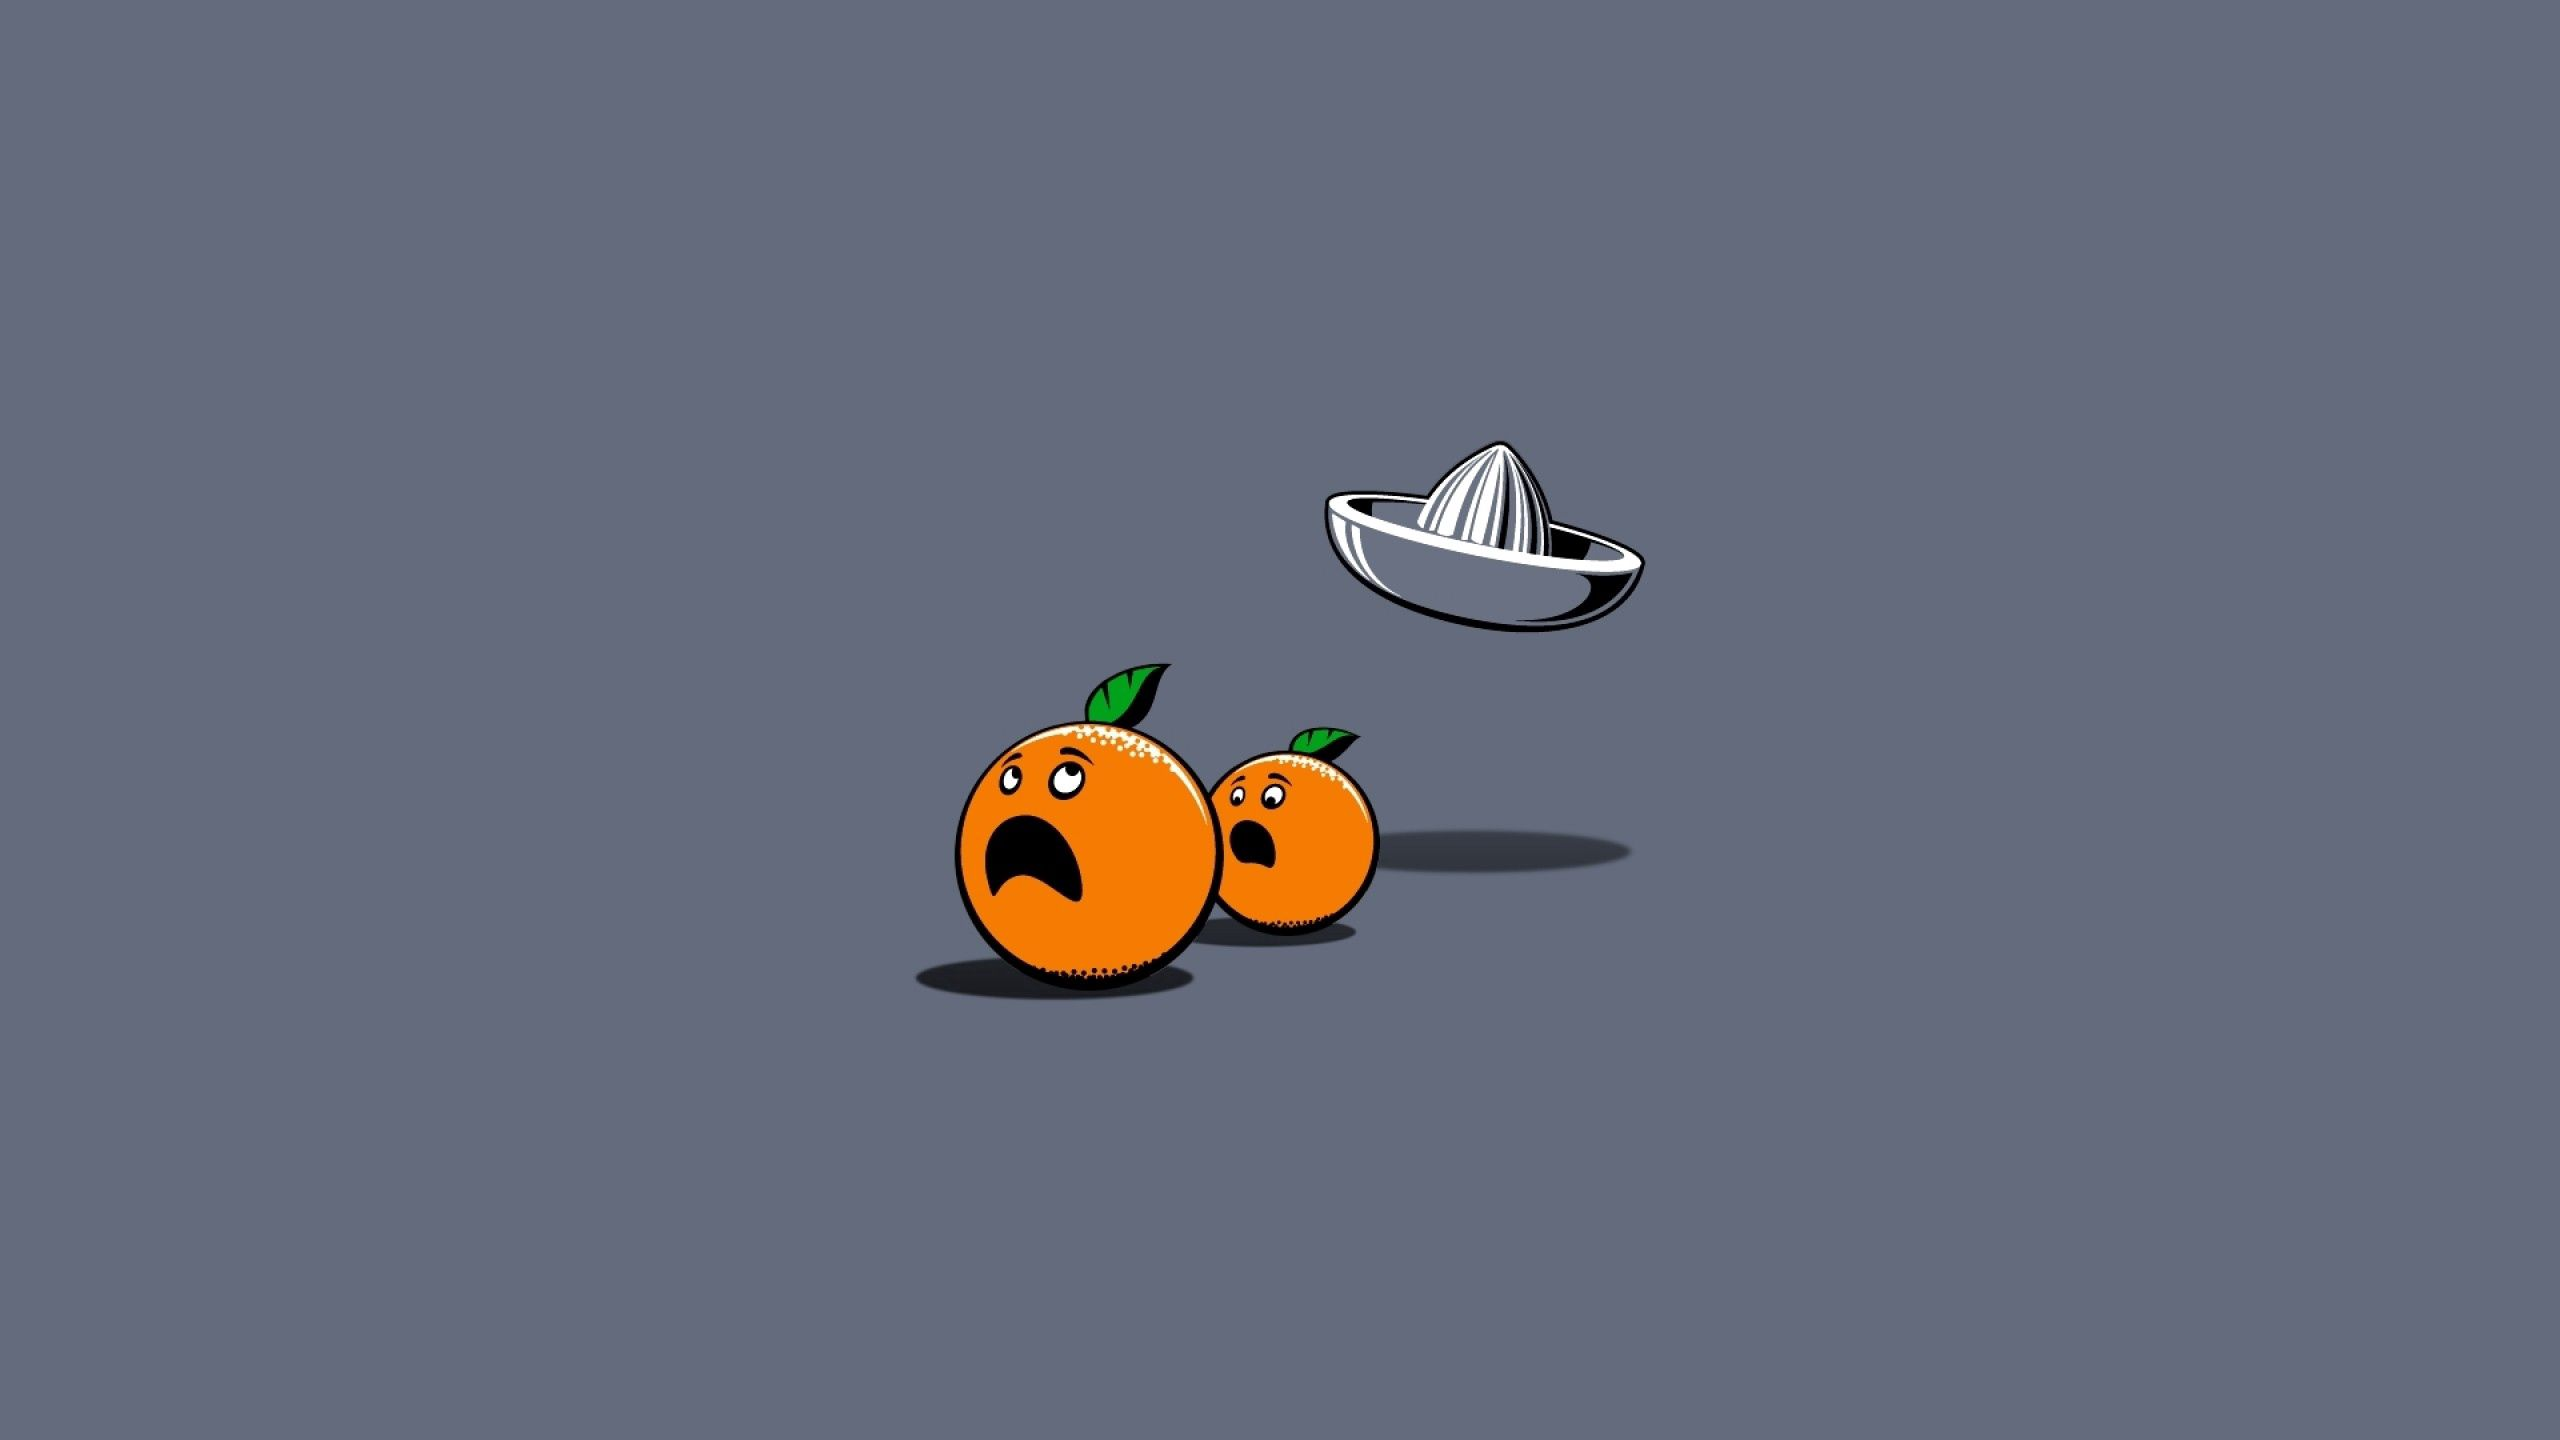 132610 download wallpaper Oranges, Vector, Paper, Emotions, Chase screensavers and pictures for free